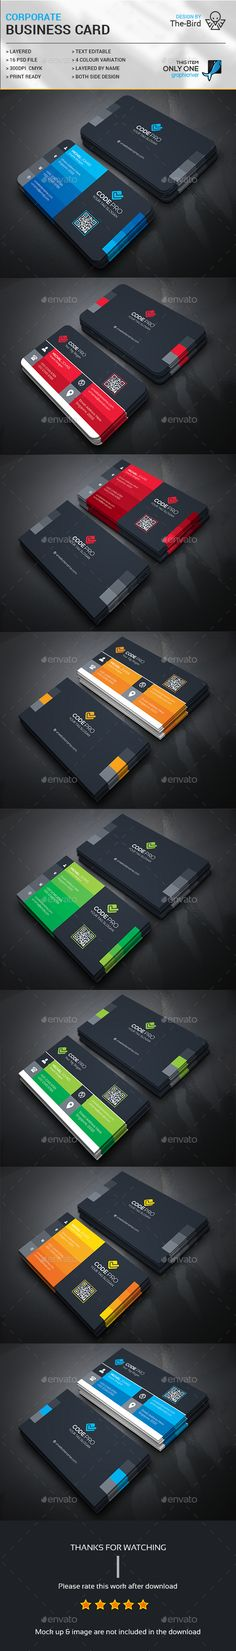 Corporate Business Card Template PSD Bundle. Download here: http://graphicriver.net/item/corporate-business-card-bundle/15471572?ref=ksioks